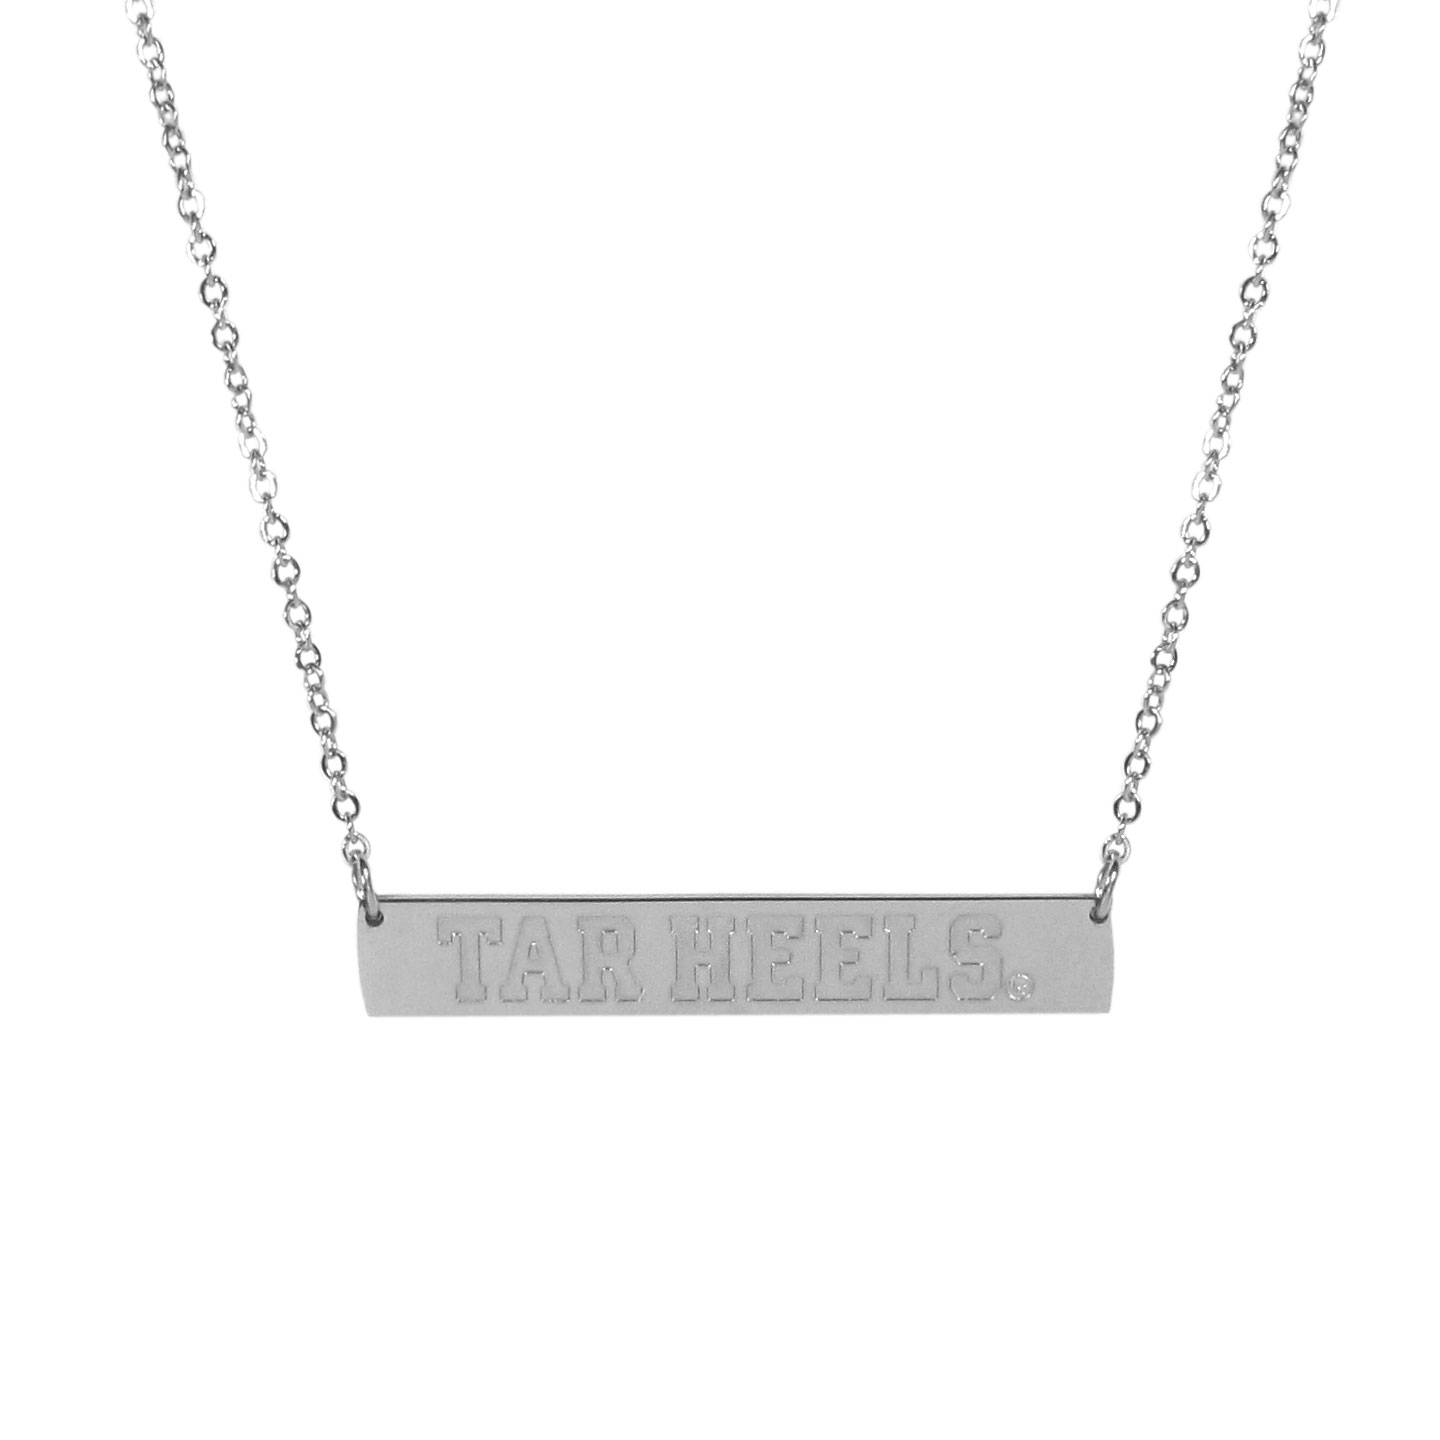 N. Carolina Tar Heels Bar Necklace - Simply beautiful N. Carolina Tar Heels bar necklace on a 20 inch link chain with 2 inch adjustable extender. This light-weight bar necklace has a stylish silver colored finish with the team name expertly etched on the 1.5 inch bar. Every female  fan will enjoy this contempory fashion accessory.